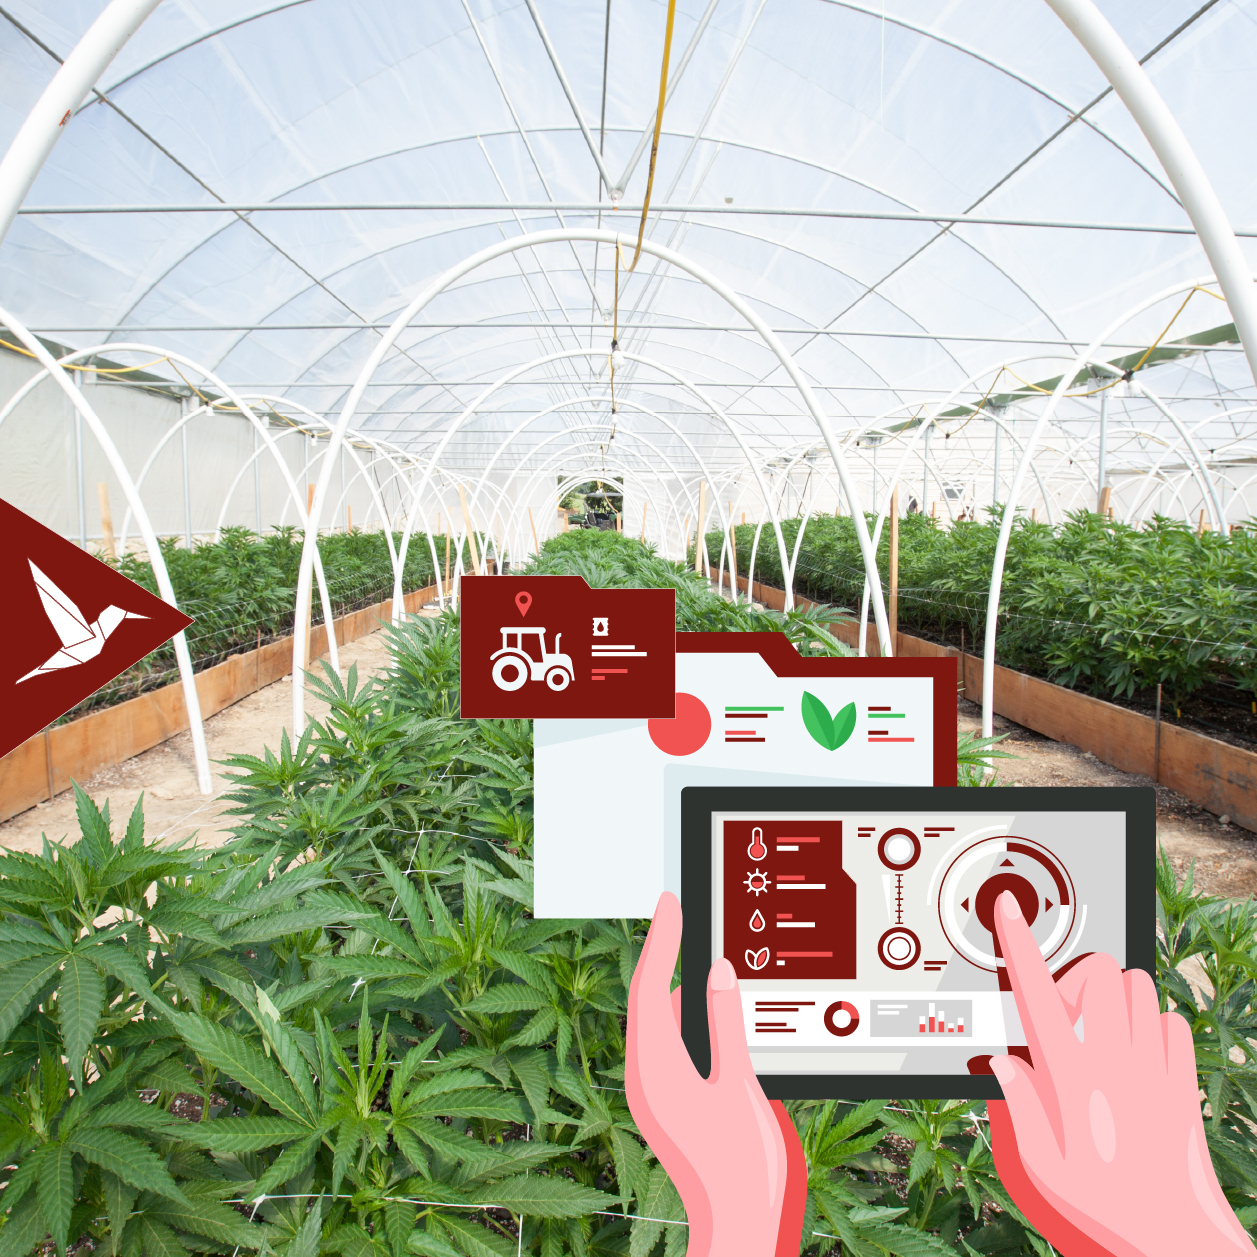 Cannabis smart greenhouse using techology to manage crop production